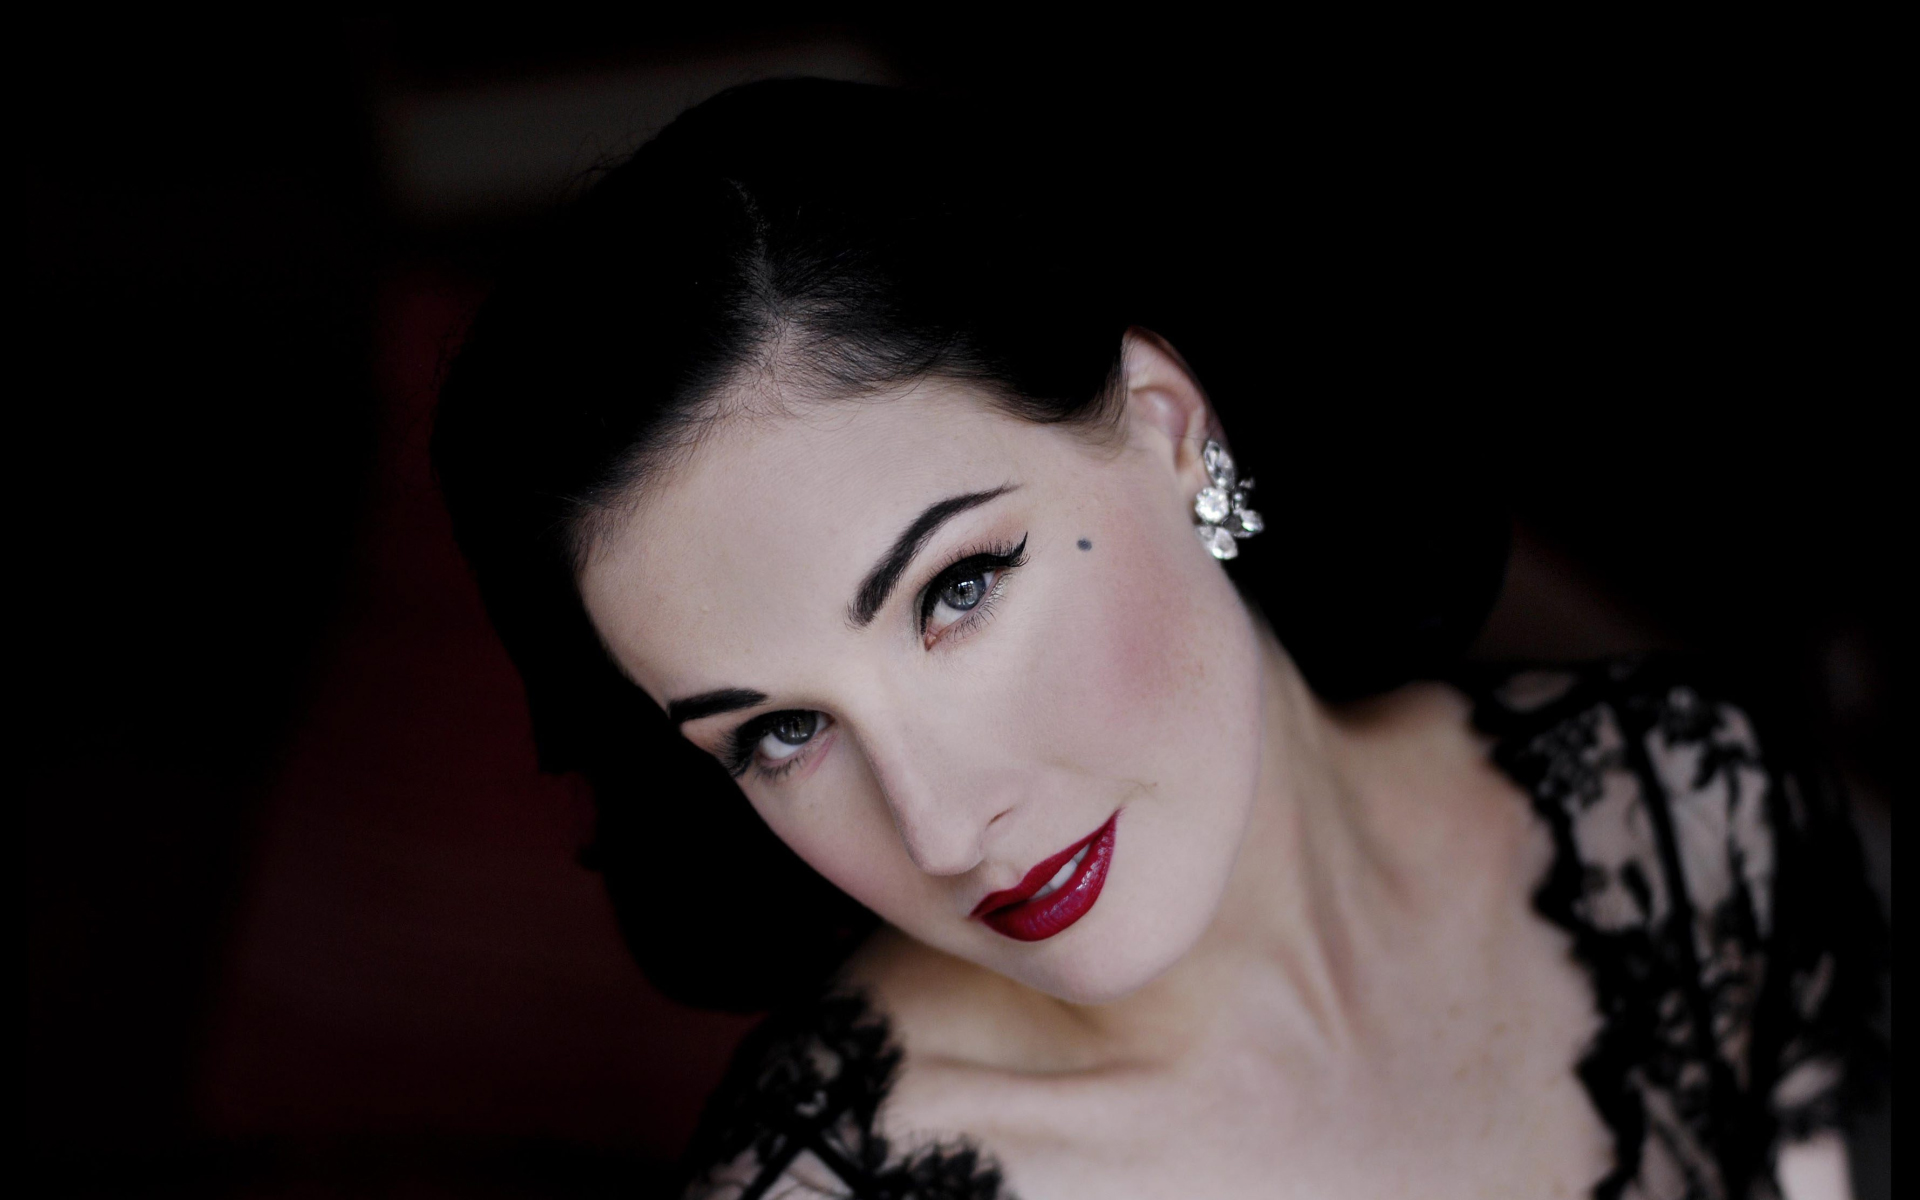 dita von teese desktop wallpaper 52113